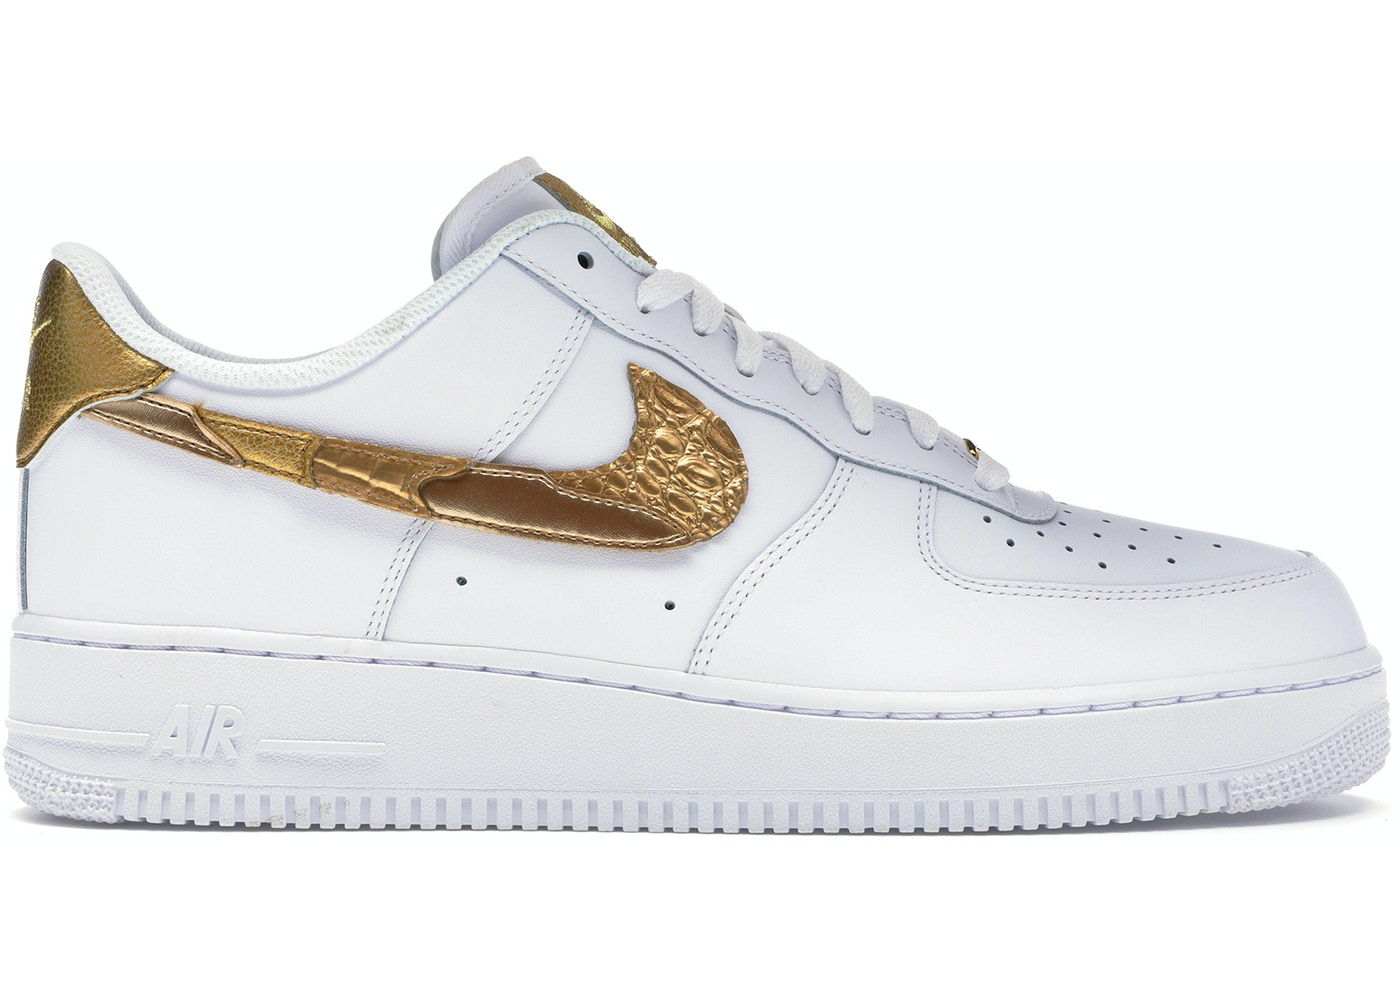 reputable site 70632 2fb40 Air Force 1 Low CR7 Golden Patchwork - AQ0666-100